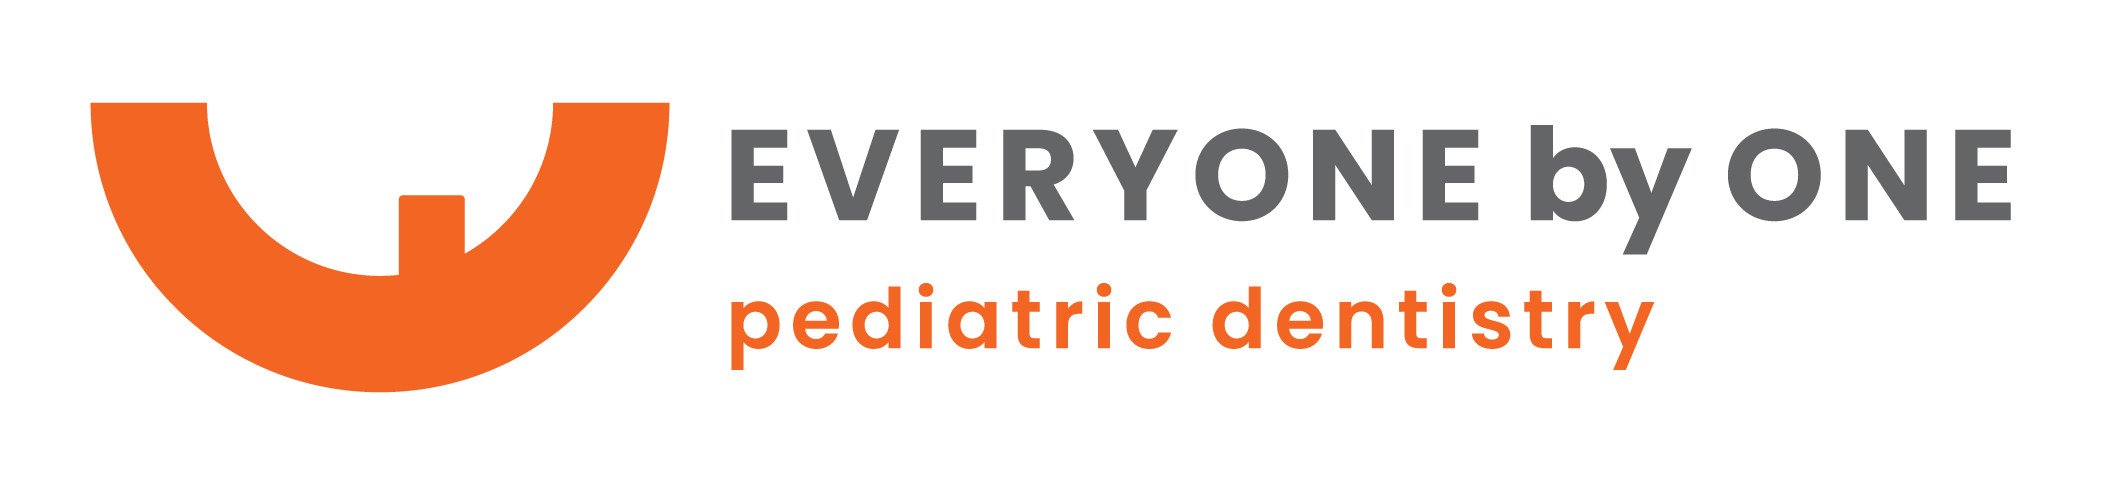 Everyone By One | Pediatric Dentistry